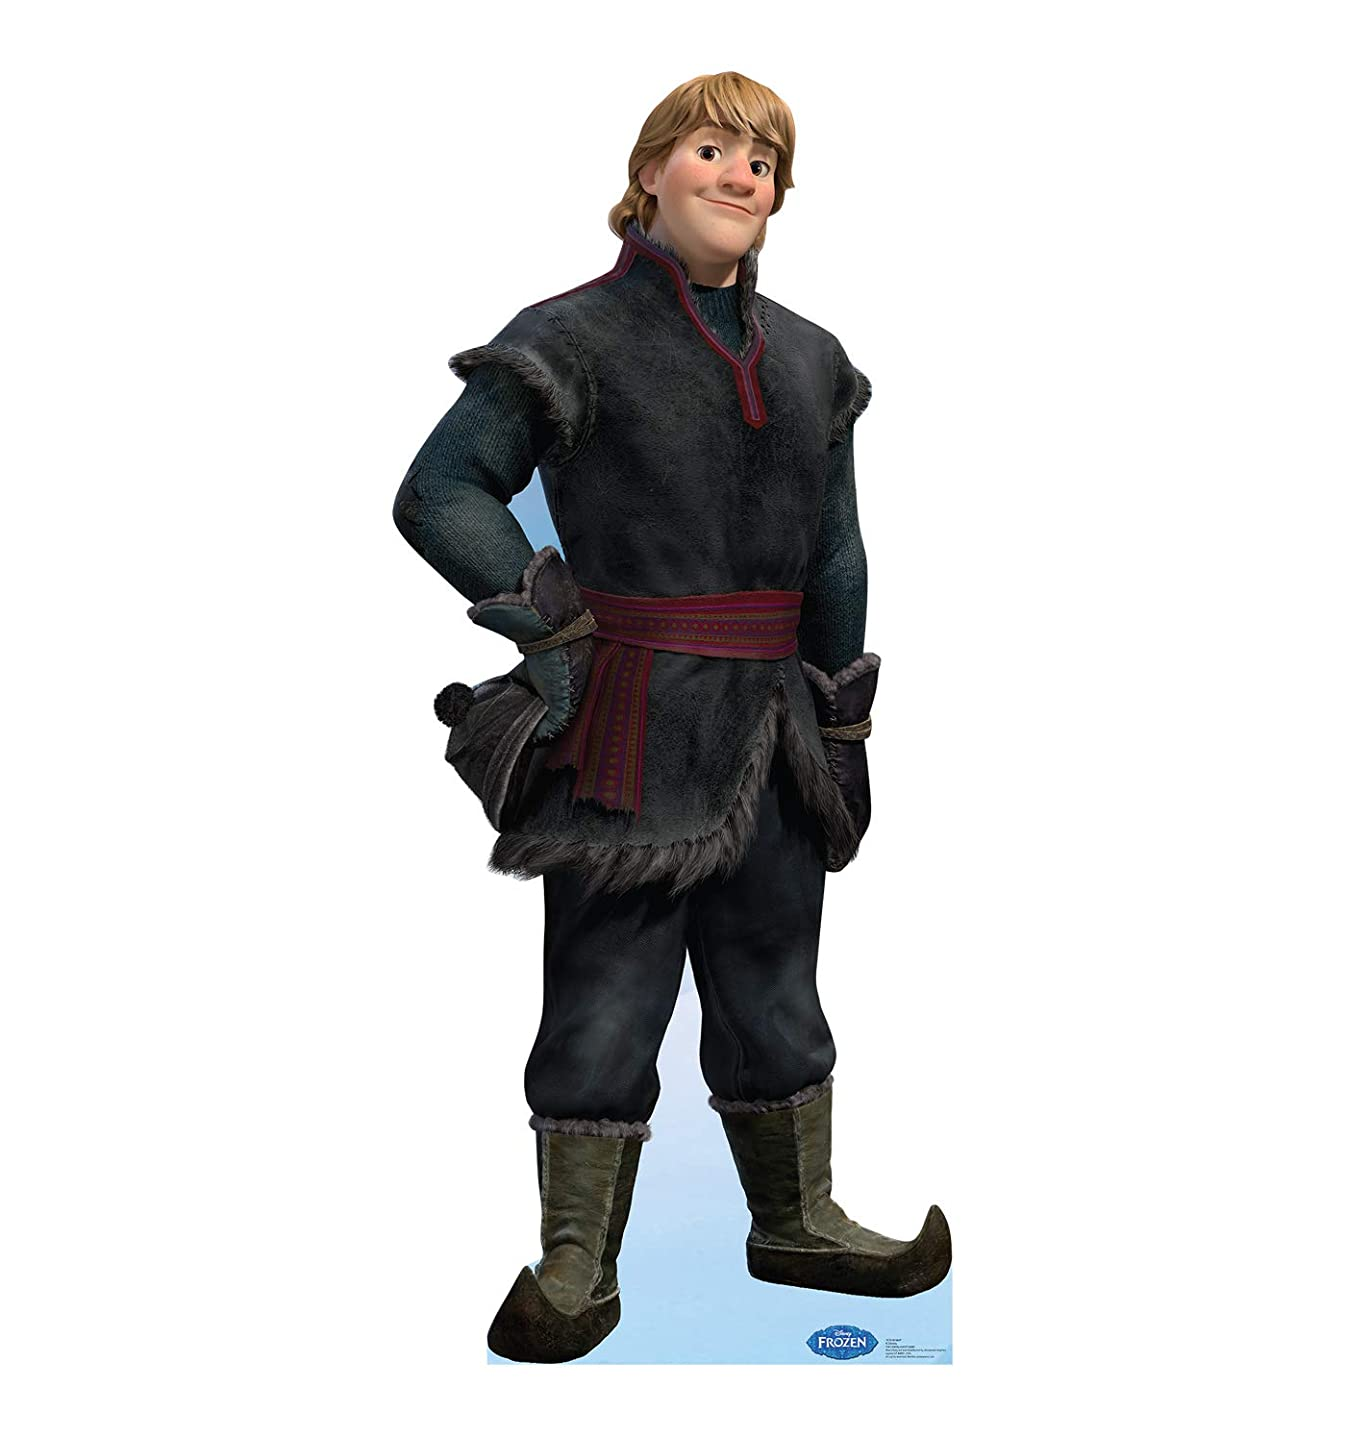 Advanced Graphics Kristoff Life Size Cardboard Cutout Standup - Disney's Frozen (2013 Film)